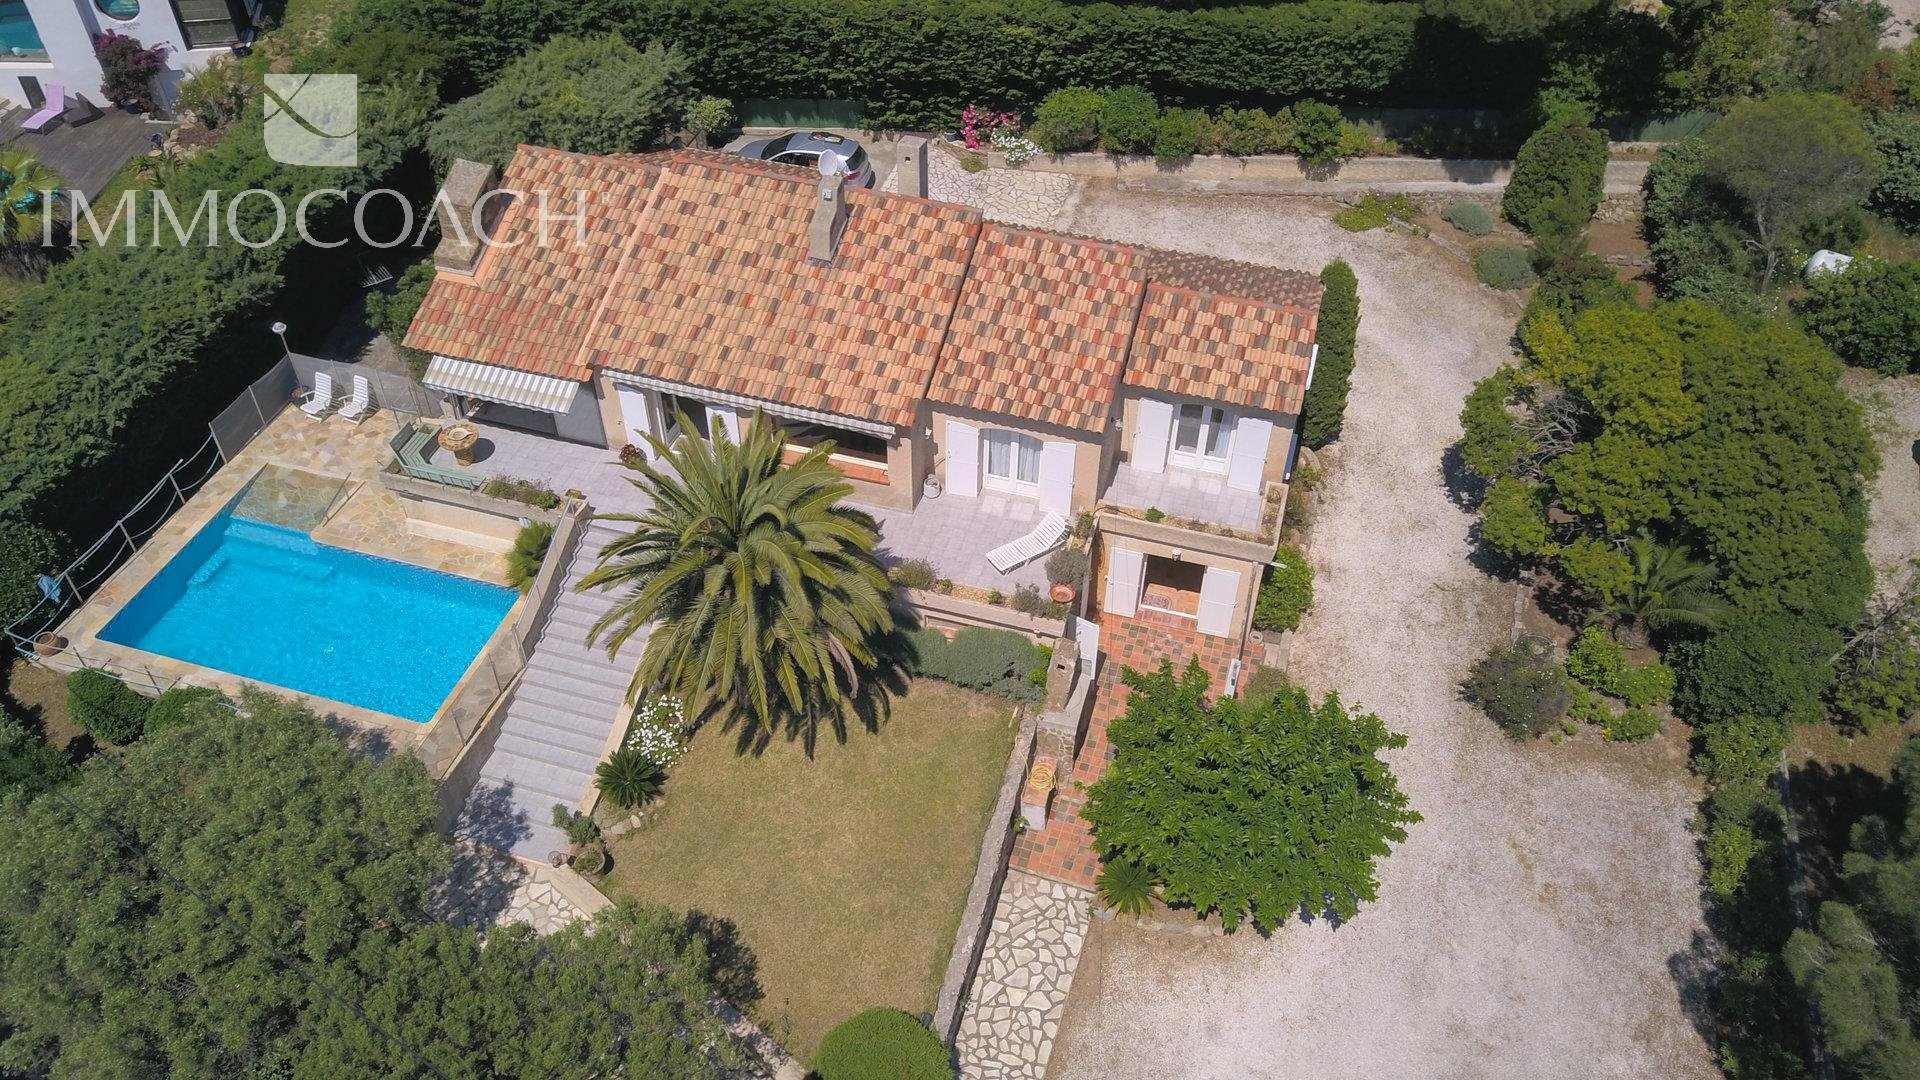 4 BEDROOM VILLA/HOUSE FOR SALE IN CARQUEIRANNE